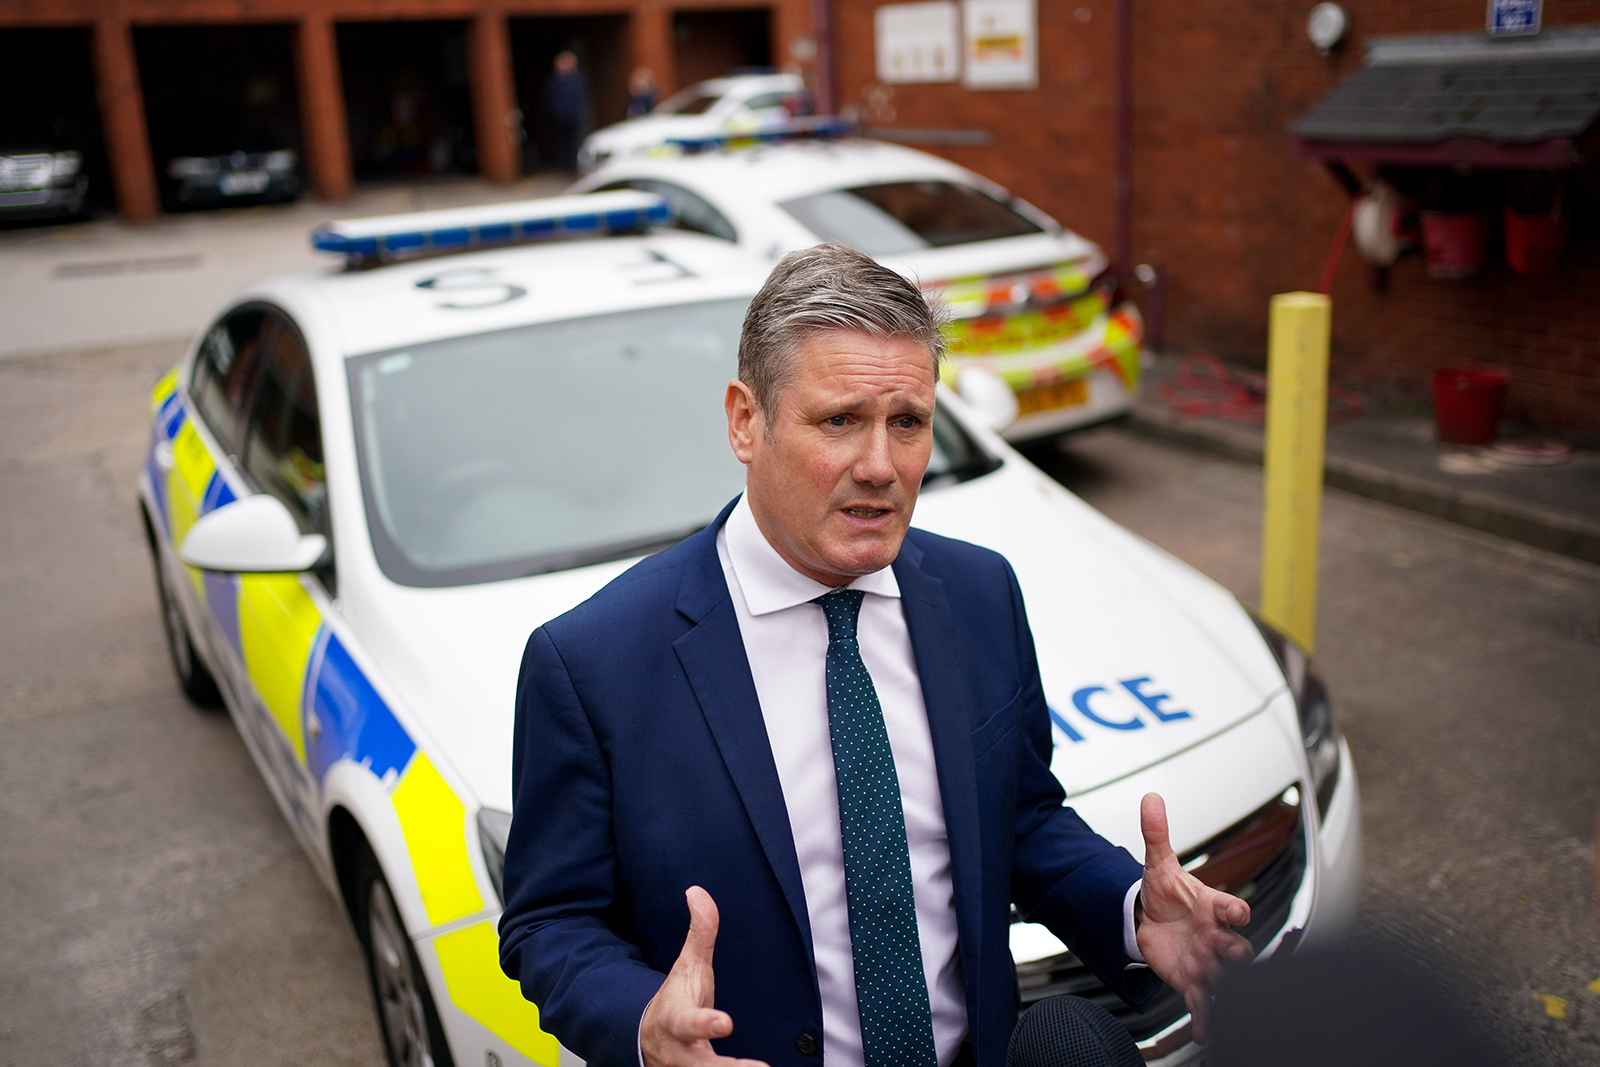 Labour leader Sir Keir Starmer talks to police officers outside Wolverhampton Police Station during a visit to Wolverhampton on Monday.